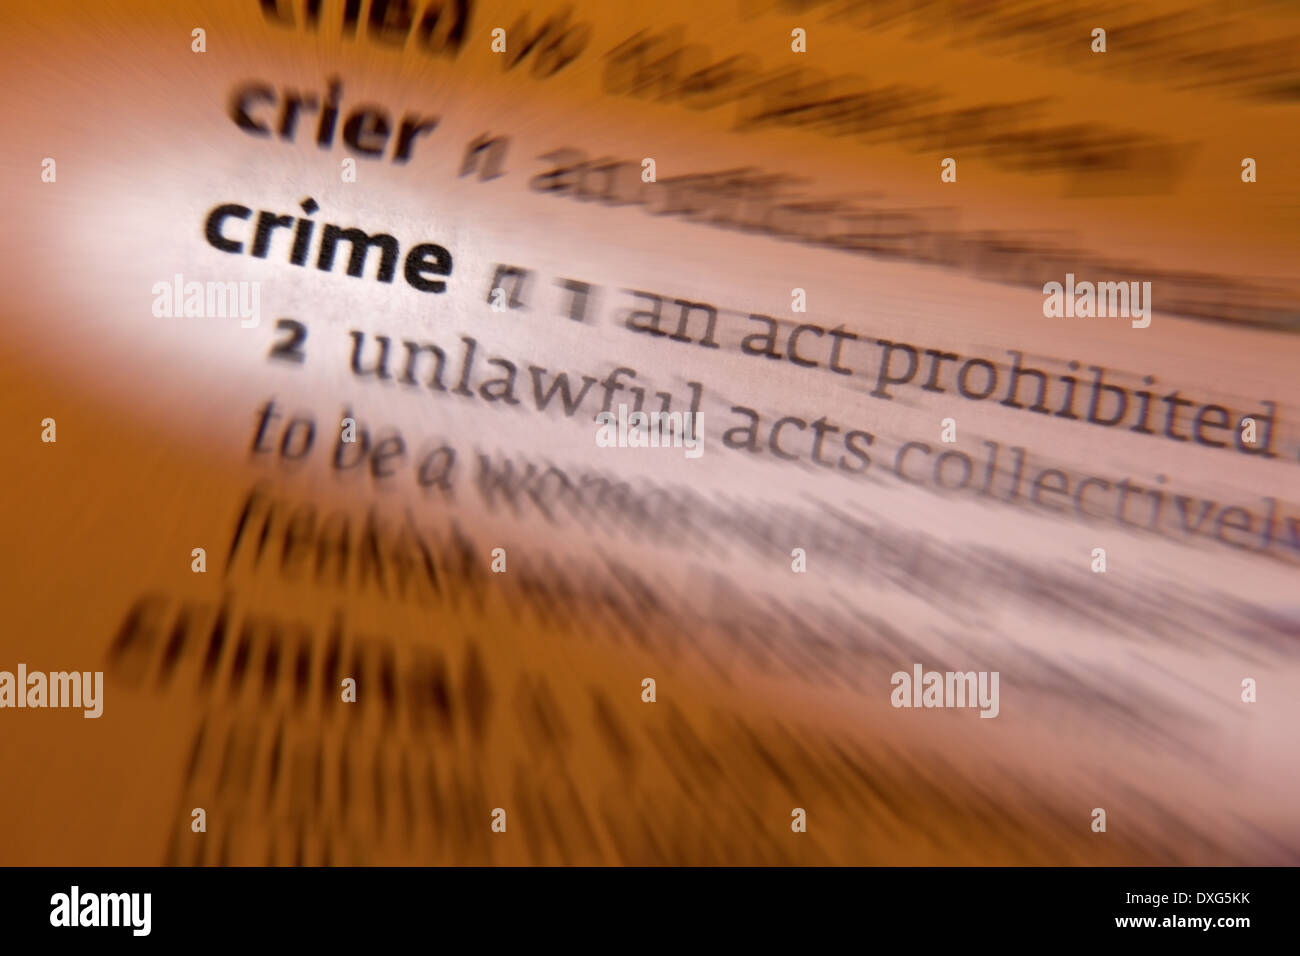 Crime - an action or omission that constitutes an offense that may be prosecuted by the state and is punishable - Stock Image